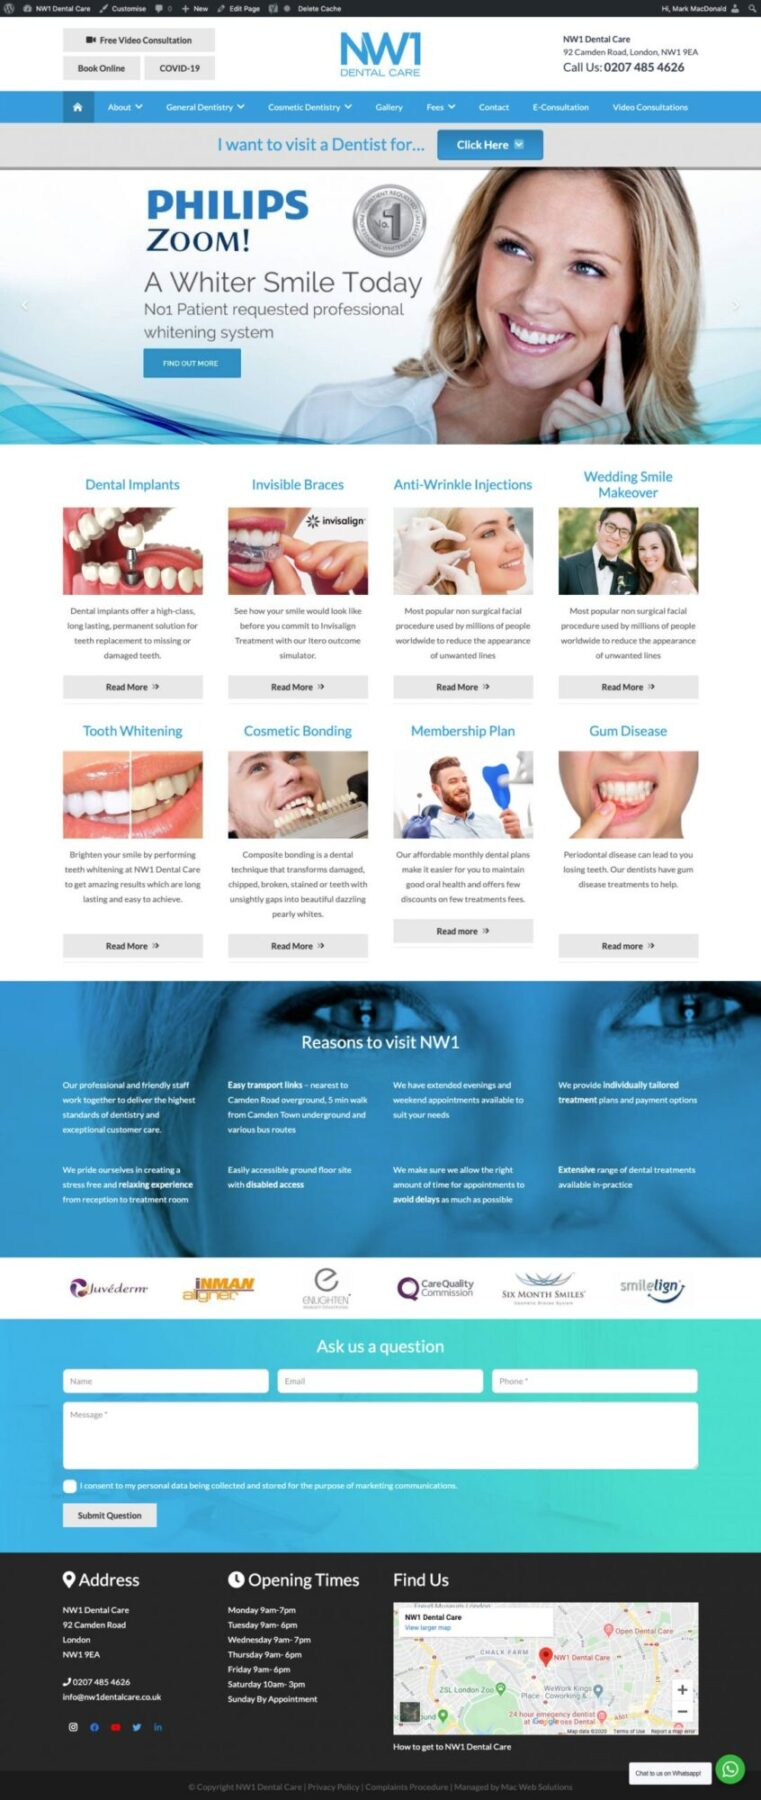 nw1 dental care website design